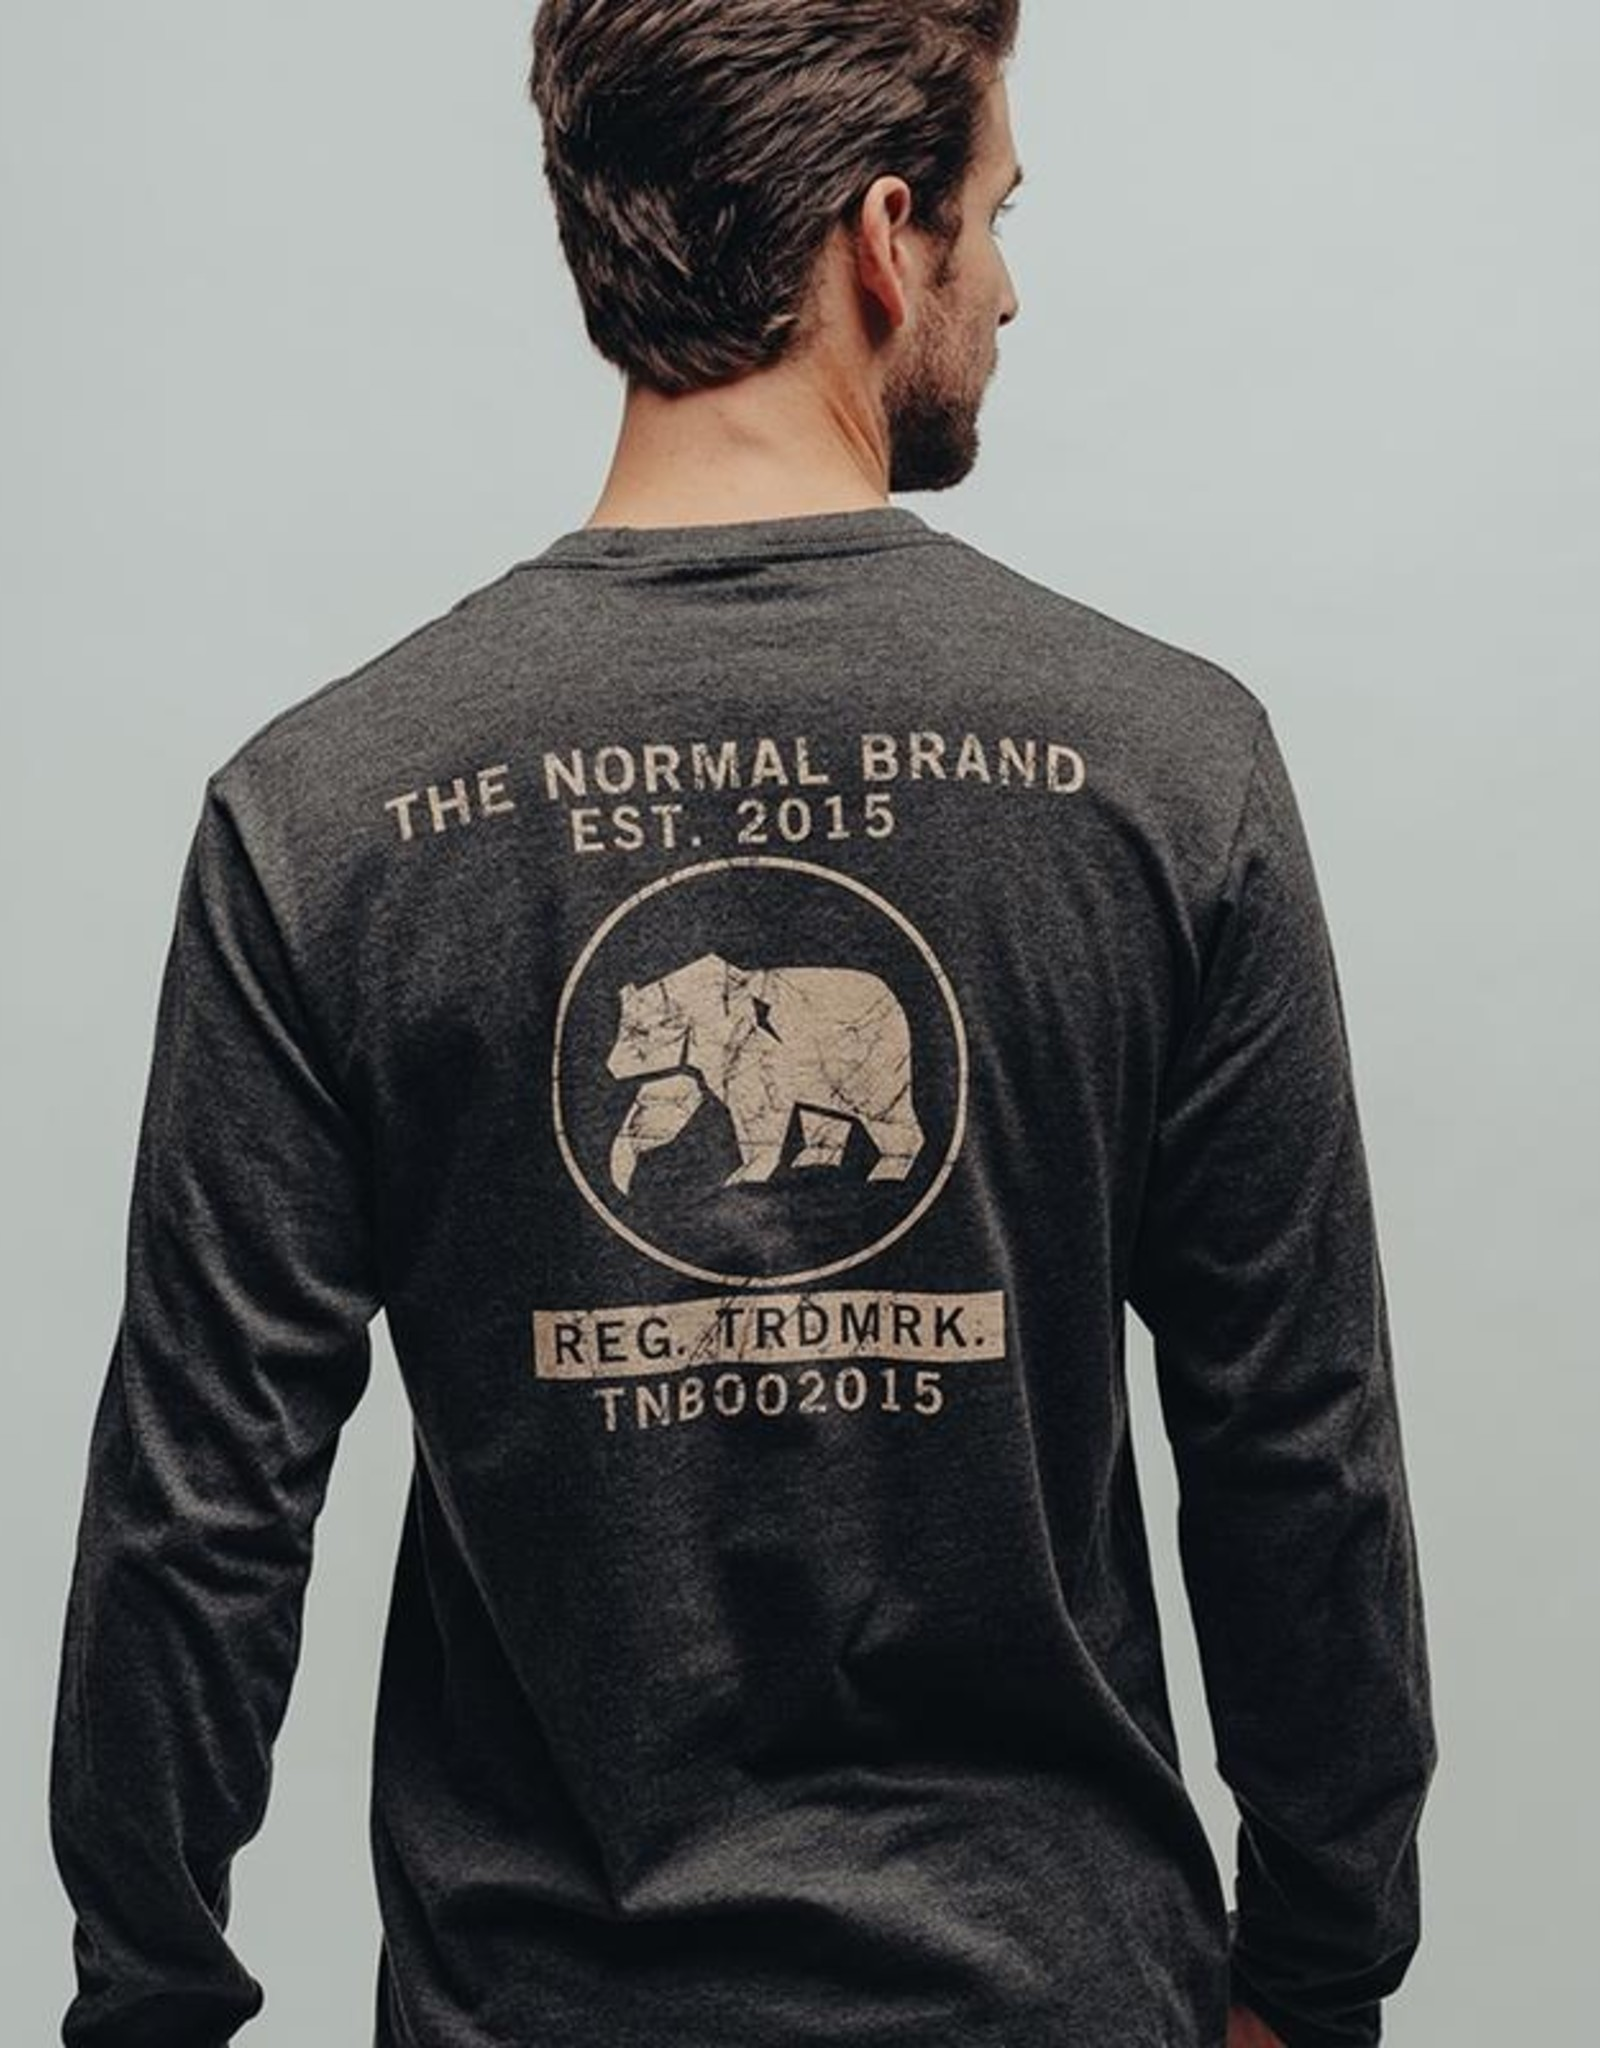 The Normal Brand LS RTM T